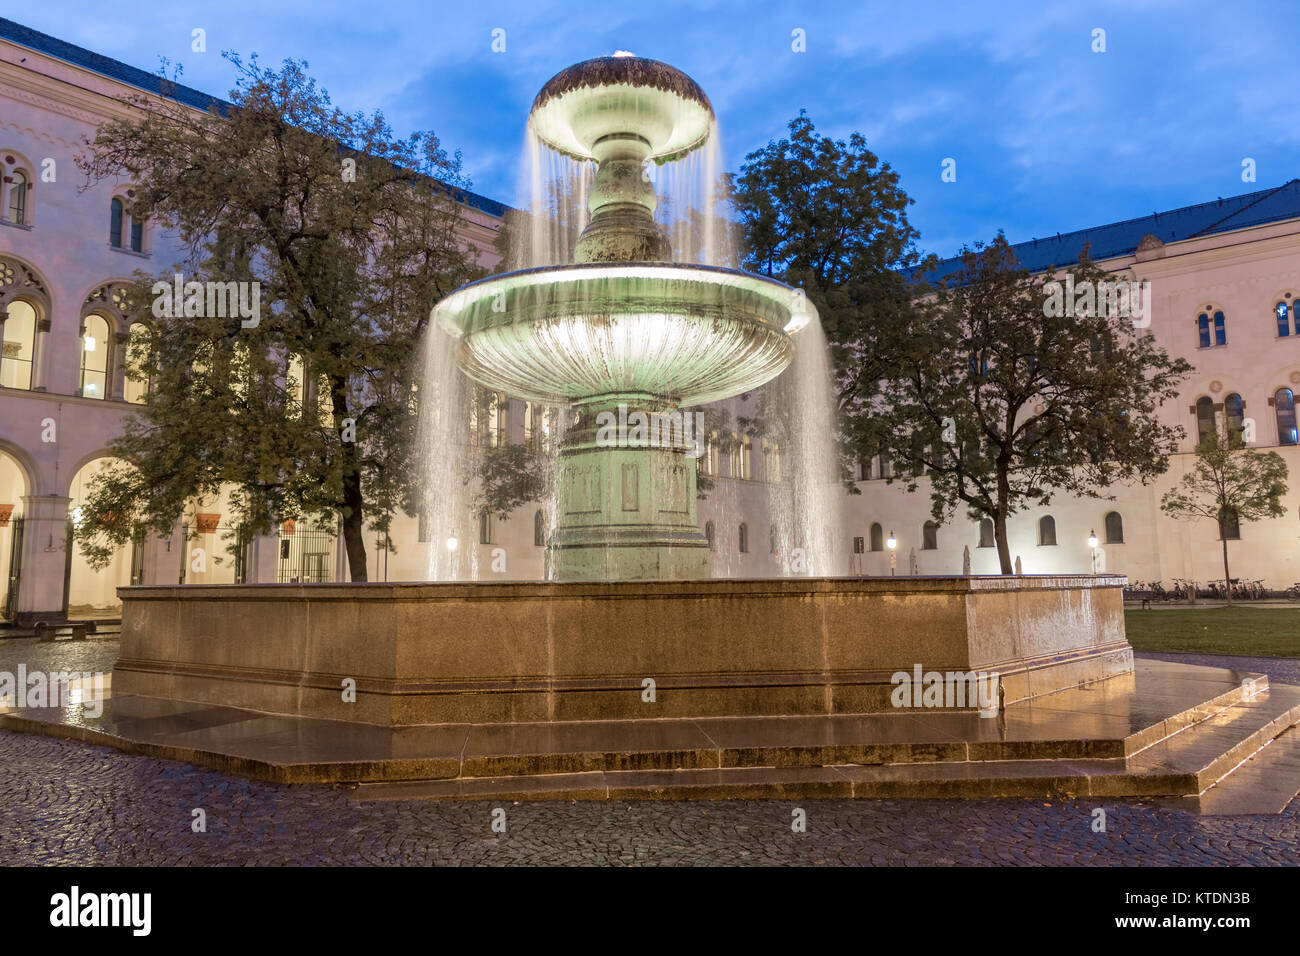 Ludwig Maximilian University Of Munich Stock Photos